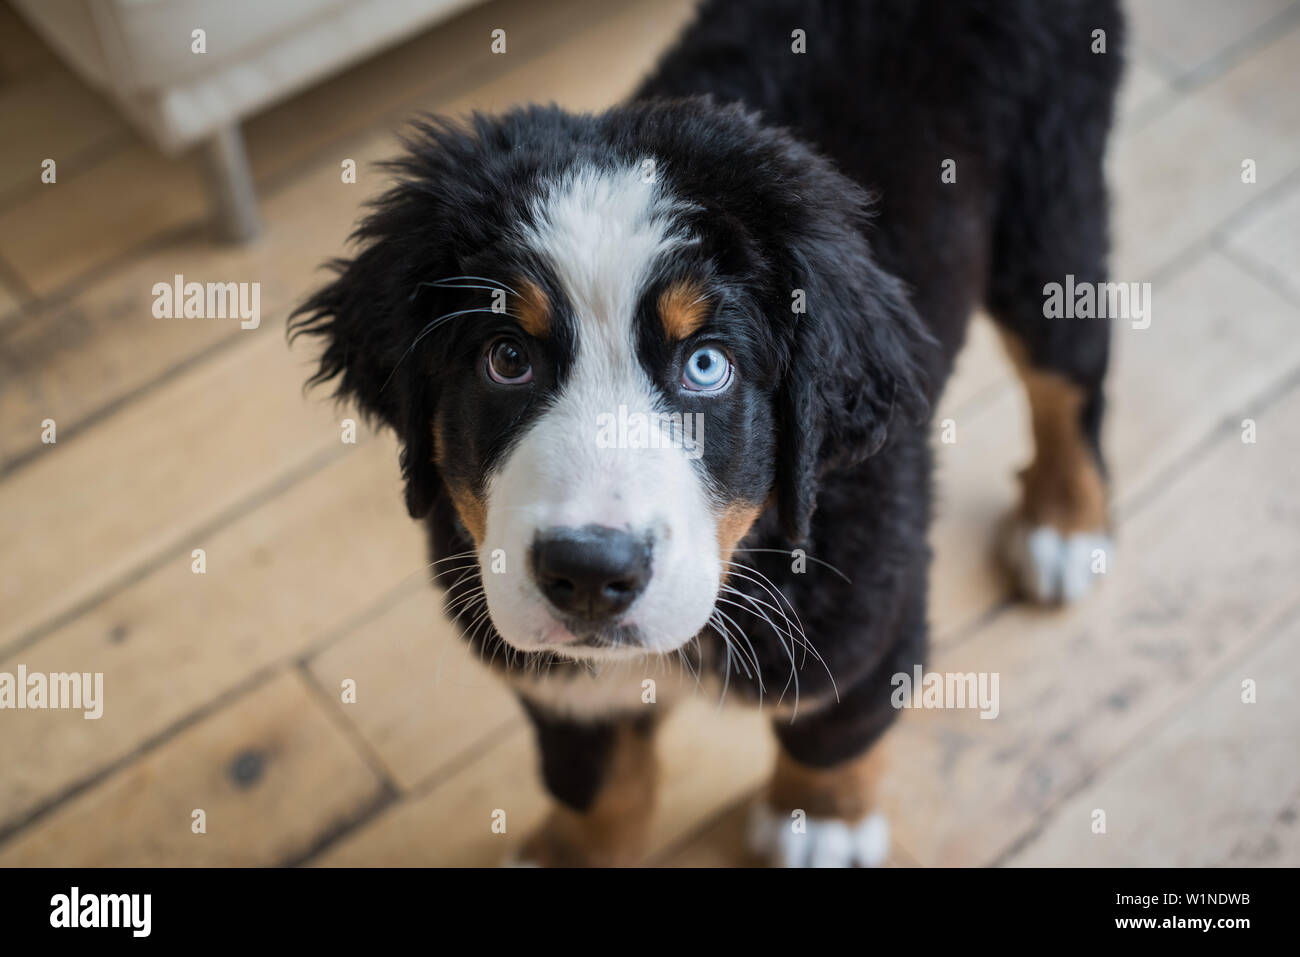 Bernese Mountain Dog Standing In Domestic Interior Looking